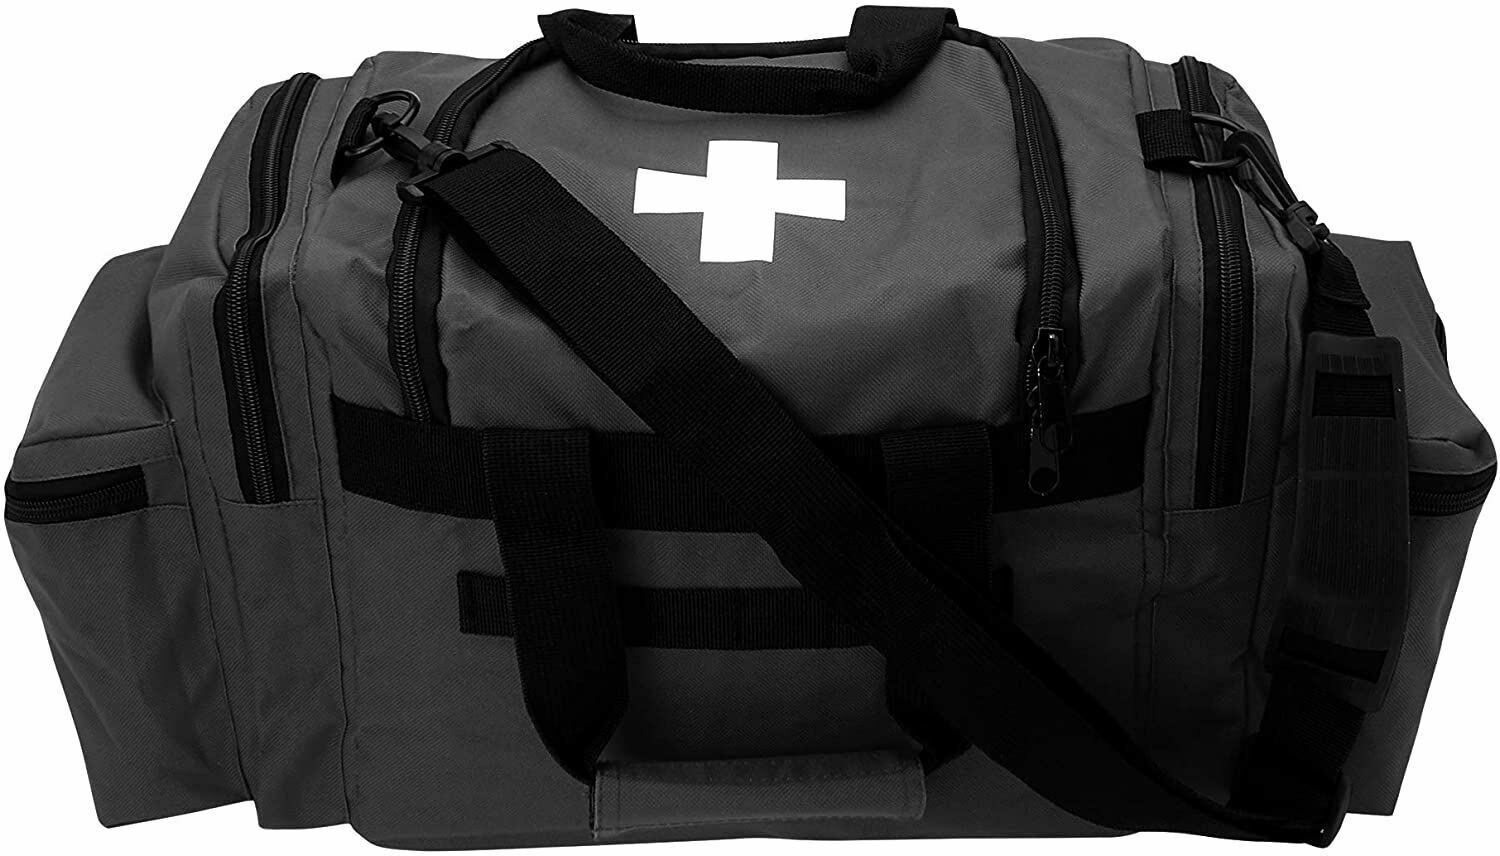 Best NEW FIRST AID RESPONDER EMS EMERGENCY MEDICAL TRAUMA BAG DELUXE